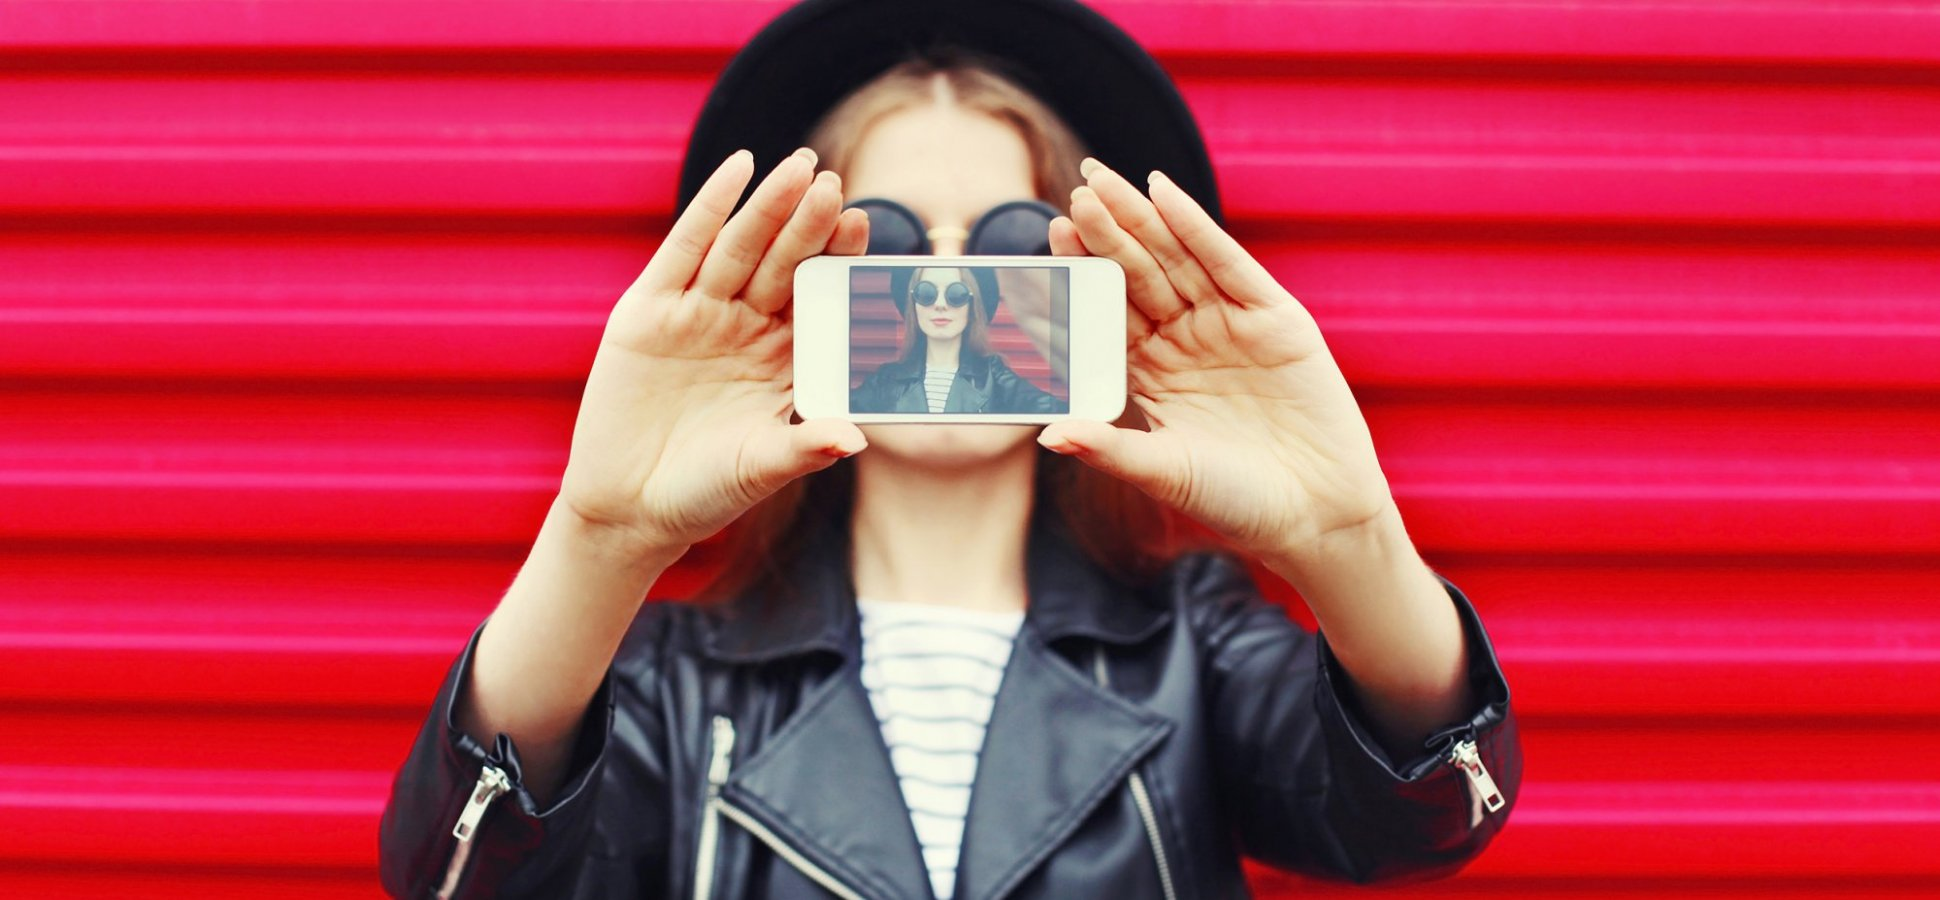 6 Expert Tips to Running Your Instagram Like a Professional Influencer